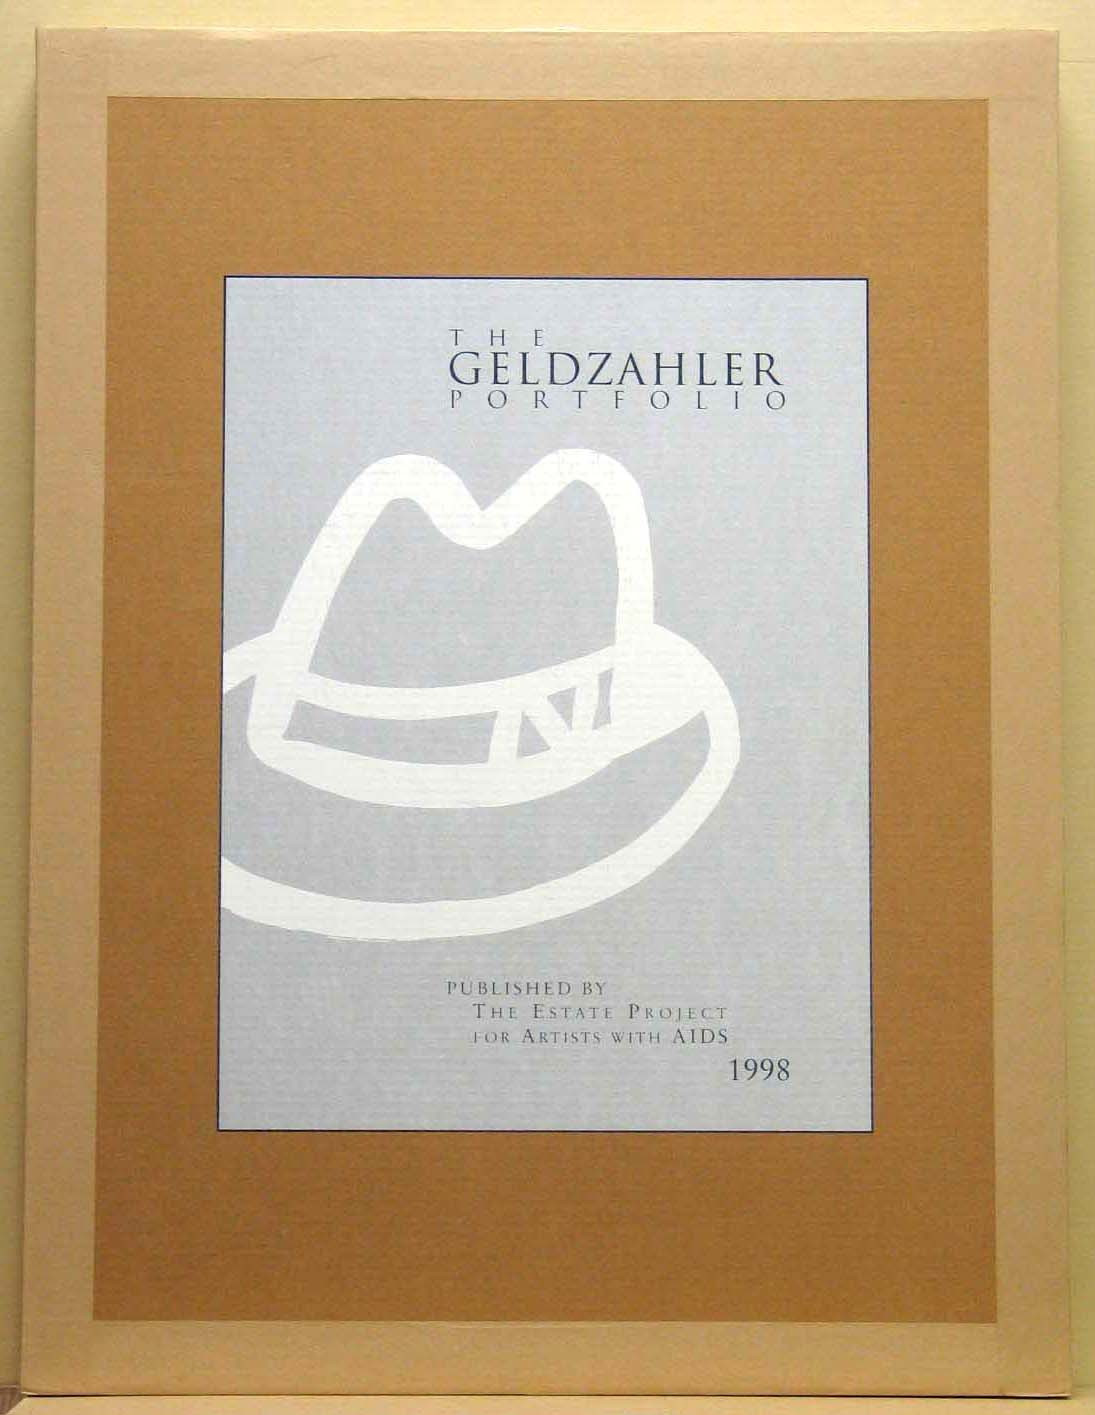 Various Artists, Louise Bourgeois, Francesco Clemente, David Hockney, Dennis Hopper, Jasper Johns, Ellsworth Kelly, Roy Lichtenstein, James Rosenquist, David Salle, Frank Stella, Andy Warhol. The Geldzahler Portfolio. 1997–98, published 1998